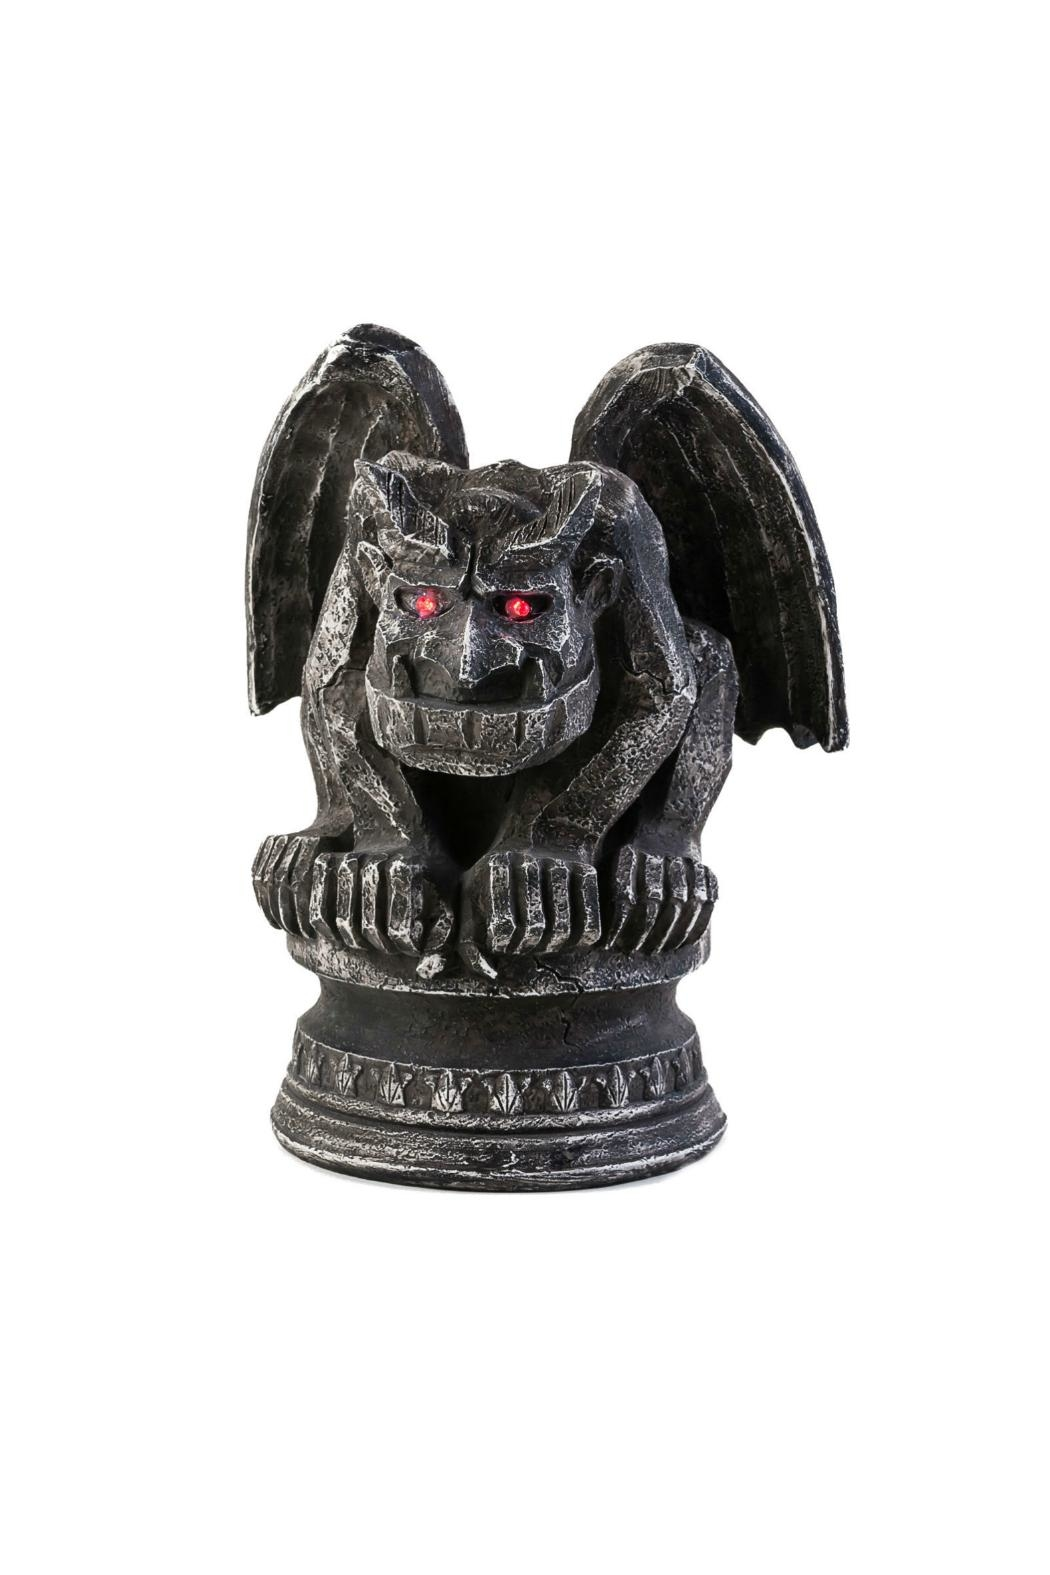 One Hundred 80 Degrees Gargoyle Figure - Main Image